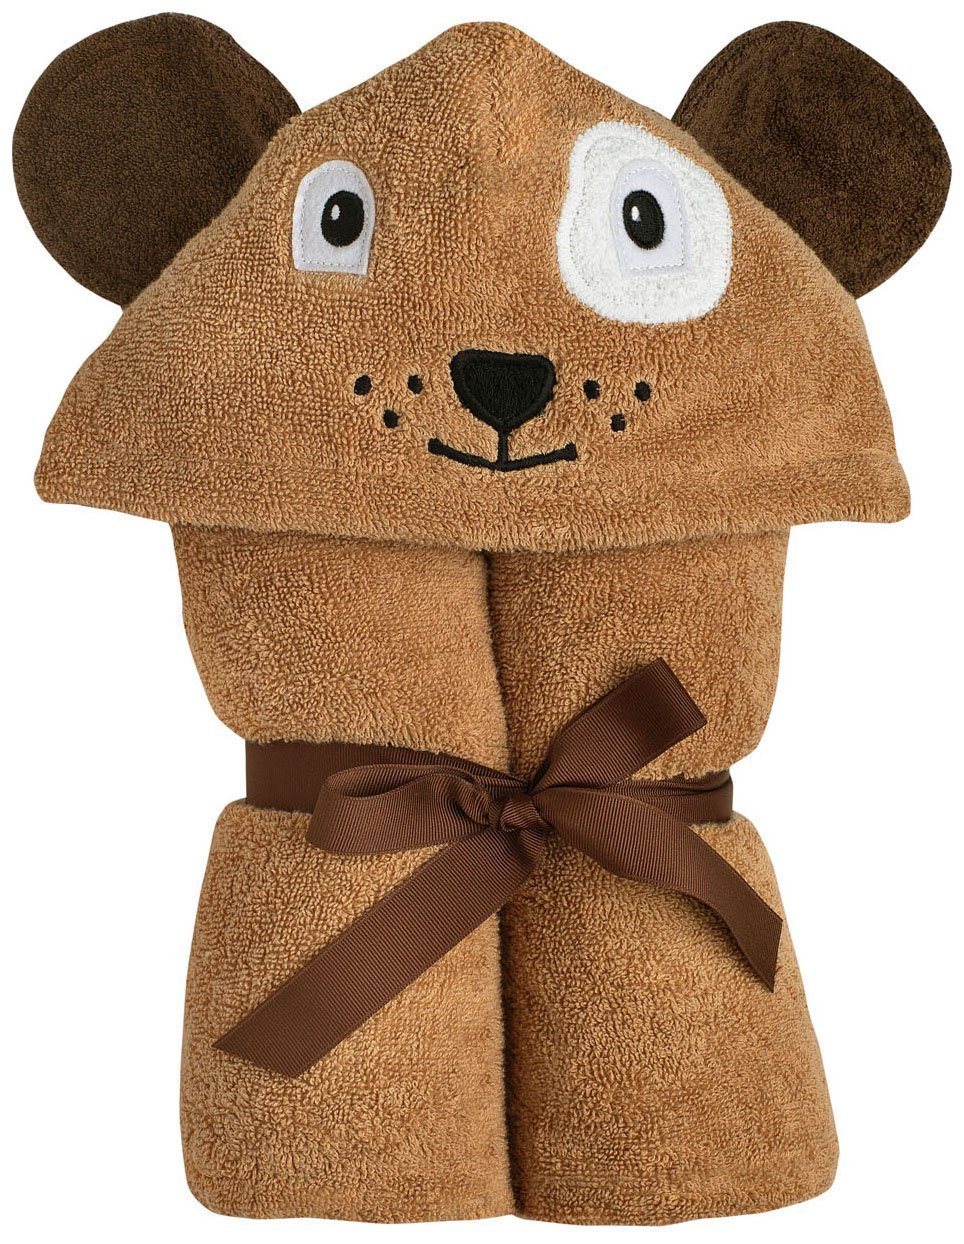 Yikes Twins Child Hooded Towel - Dog by Yikes Twins